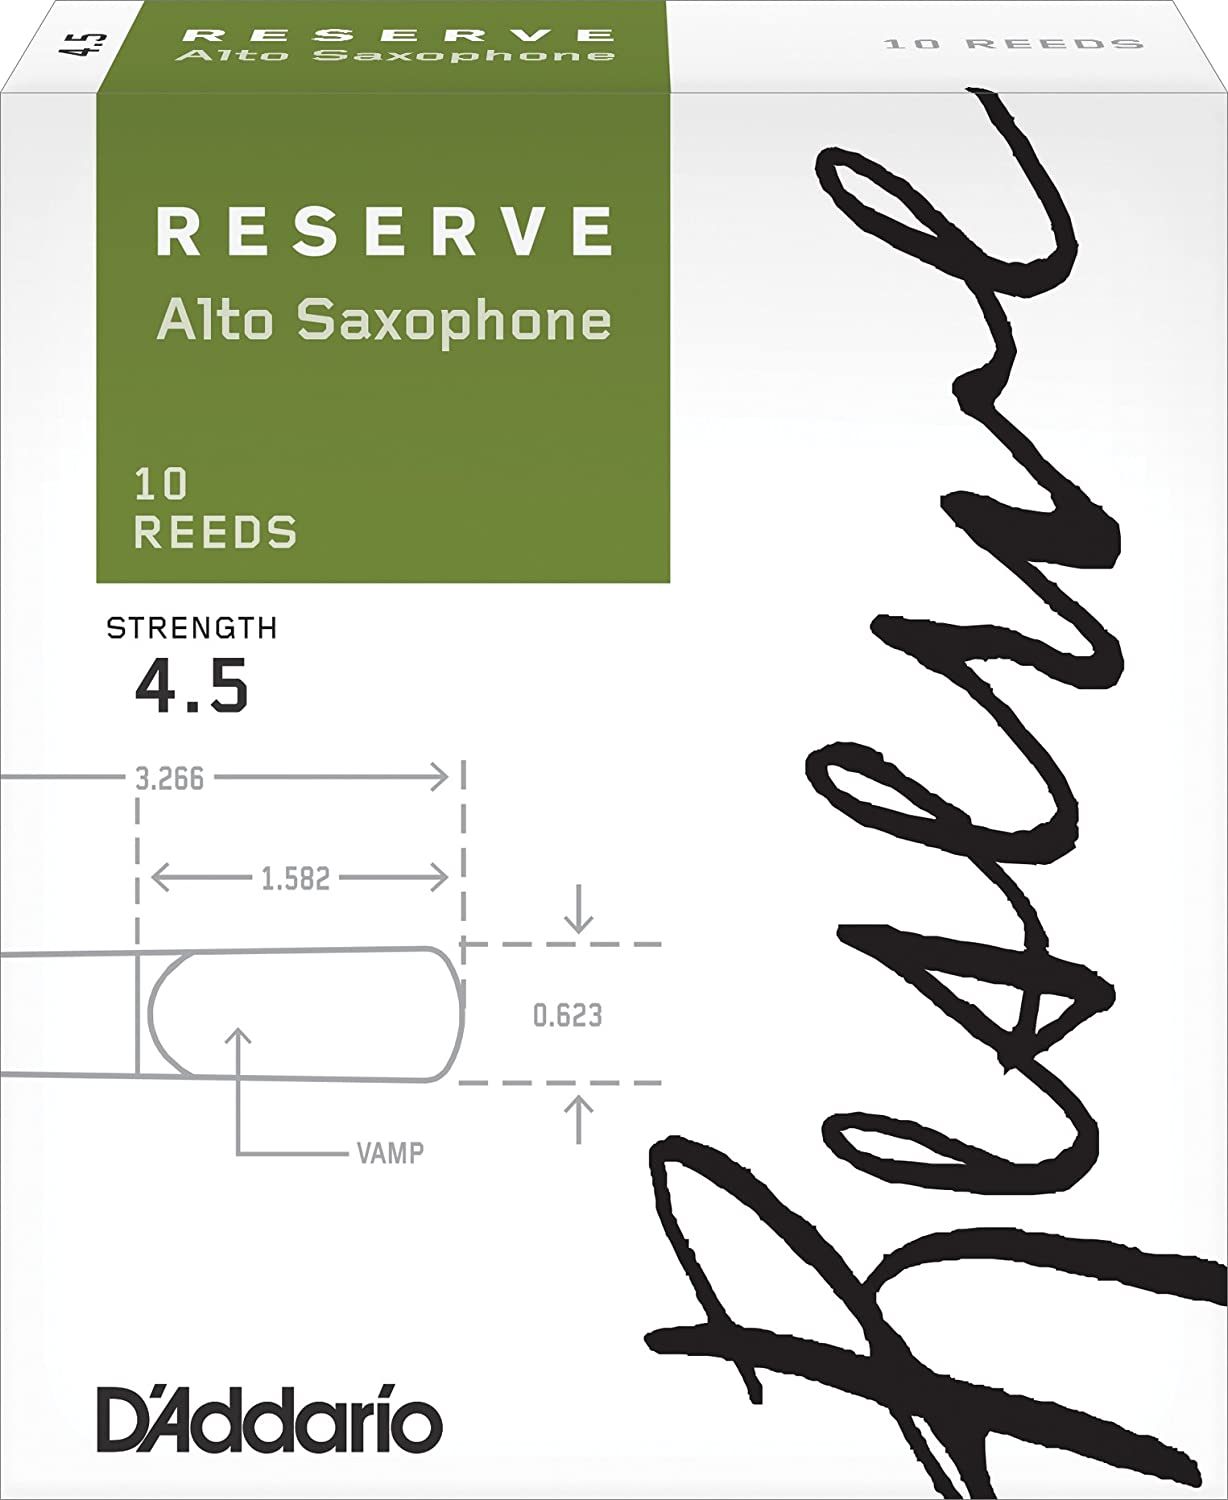 D'Addario Reserve Alto Saxophone Reeds tenor saxophone free shipping selmer instrument saxophone wire drawing bronze copper 54 professional b mouthpiece sax saxophone